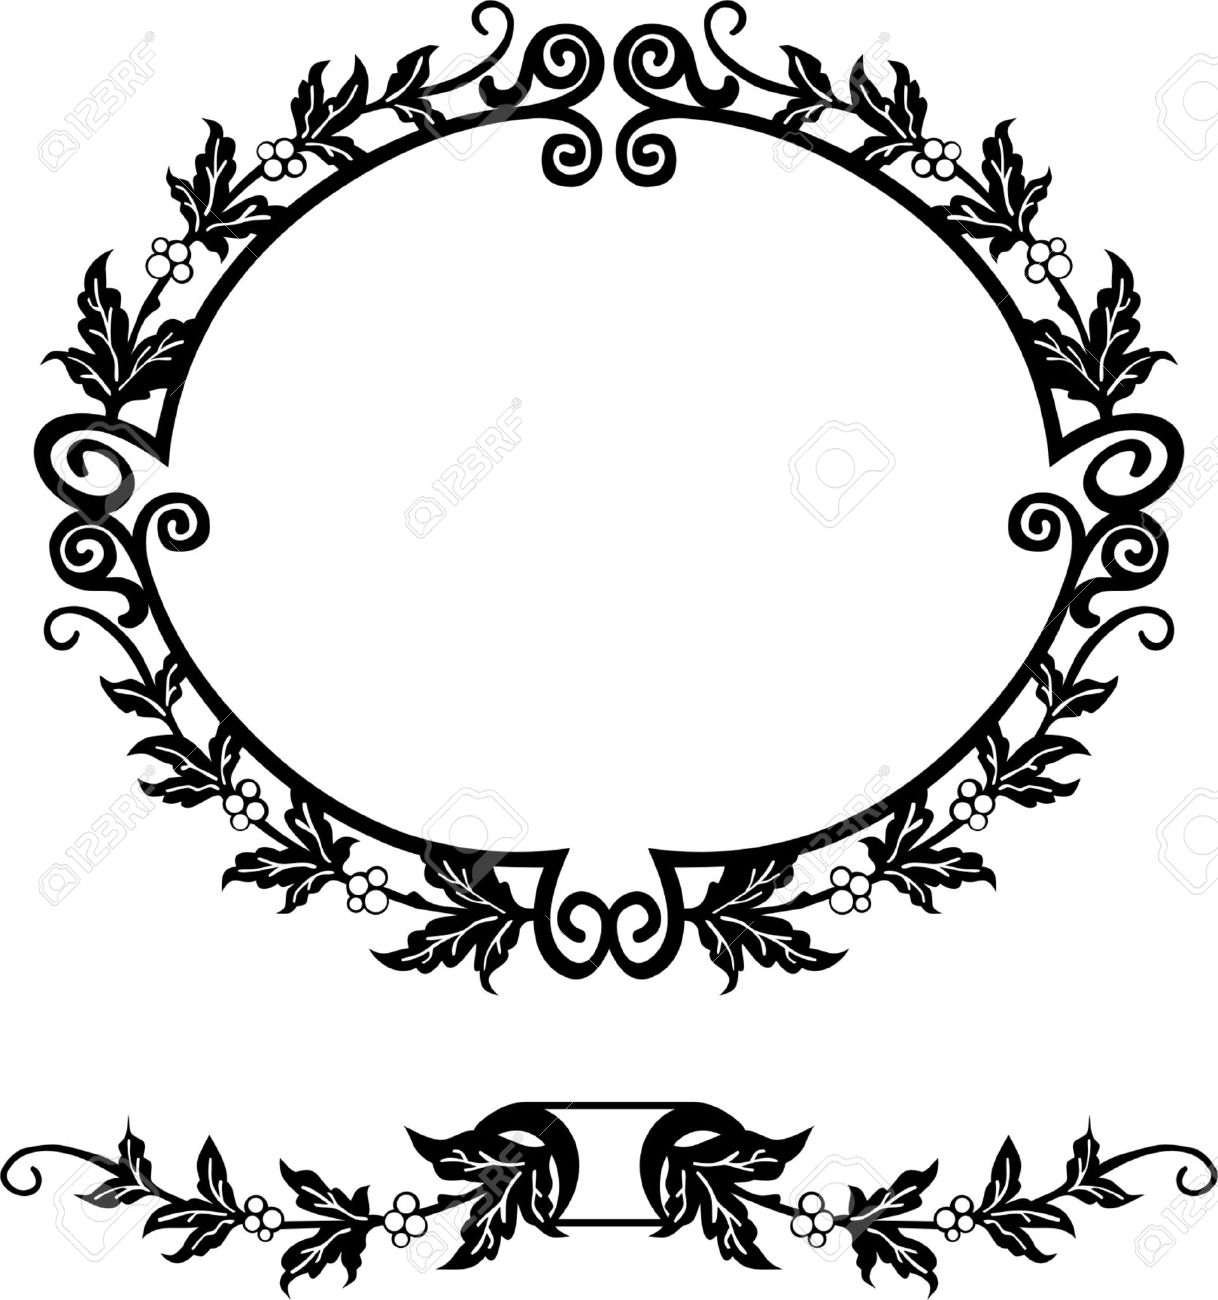 Oval Silhouette Frame Royalty Free Cliparts, Vectors, And Stock ...